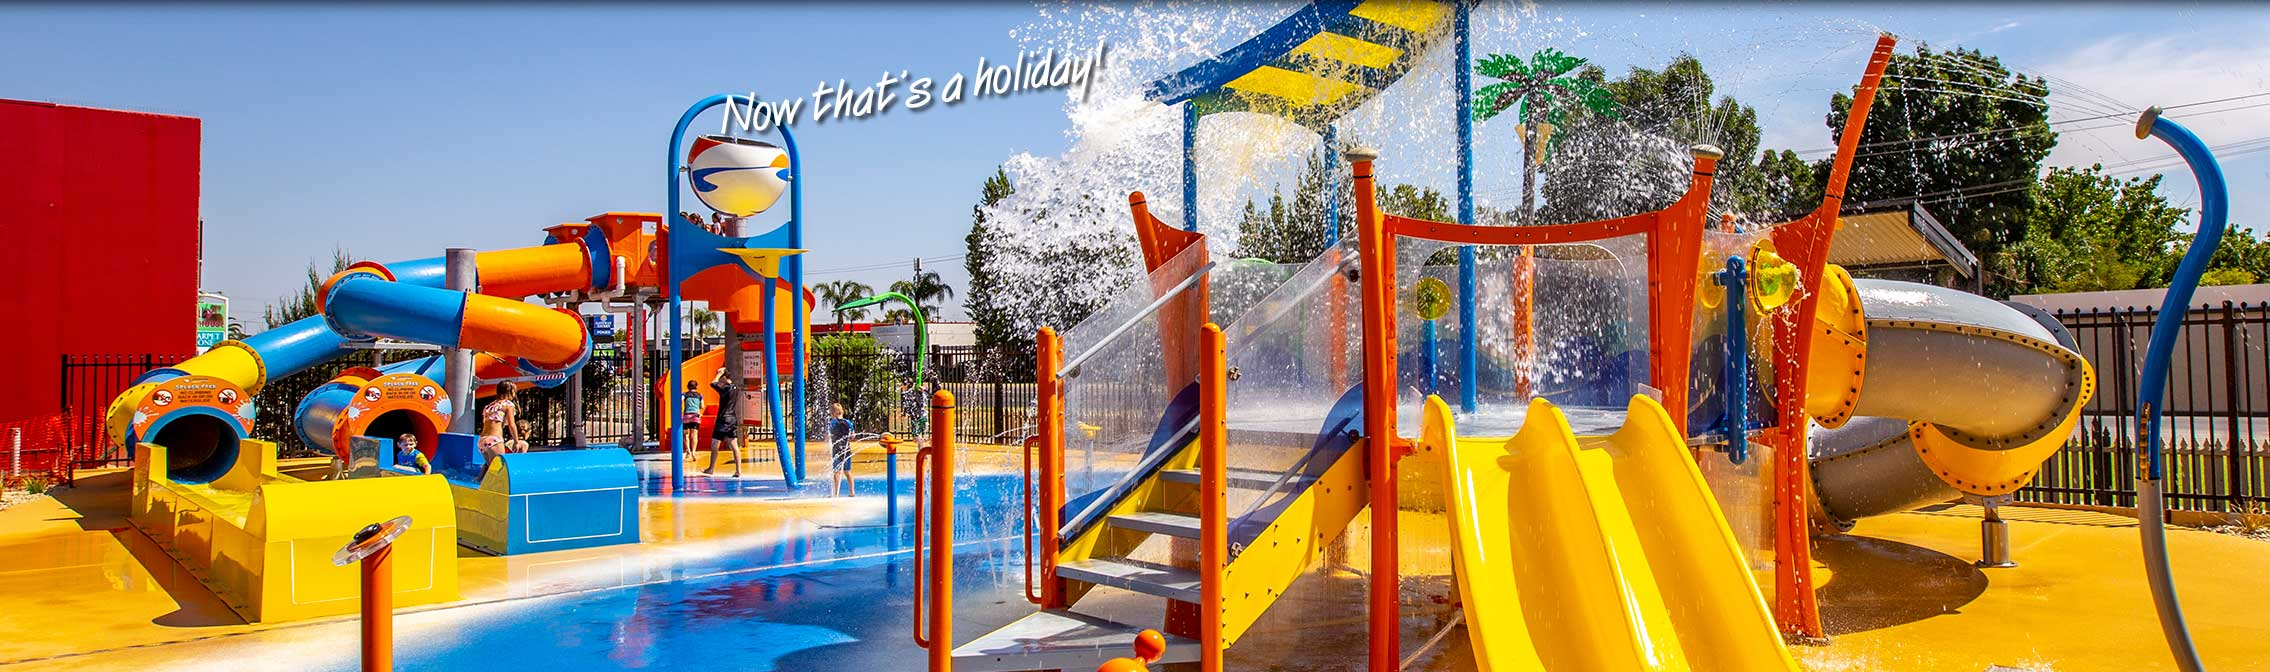 All the kids having fun at All Seasons Holiday Park Mildura